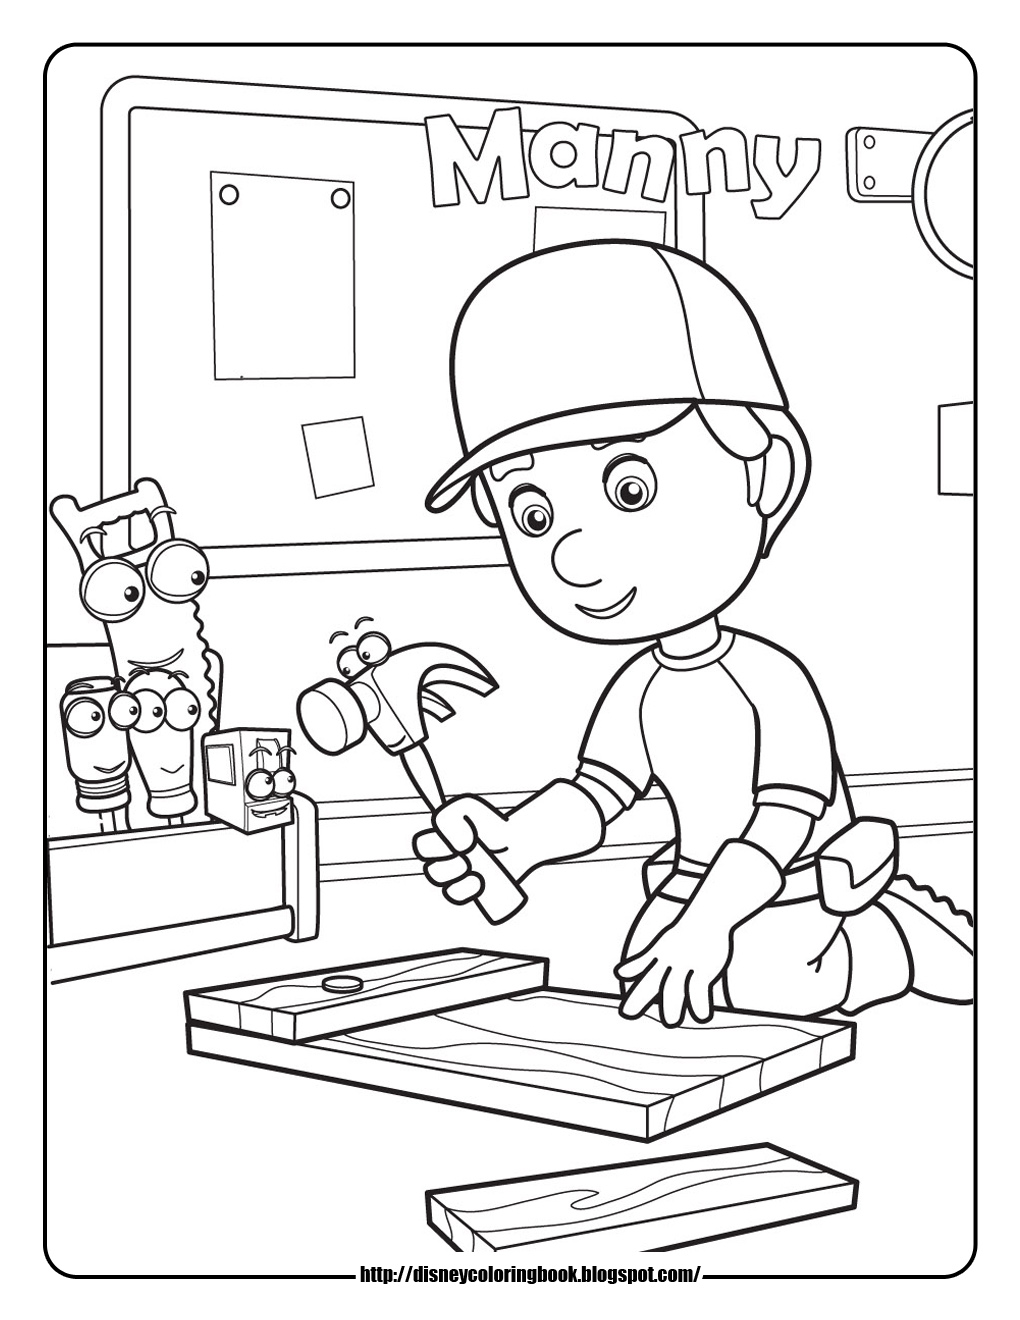 handymanny coloring pages - photo#20